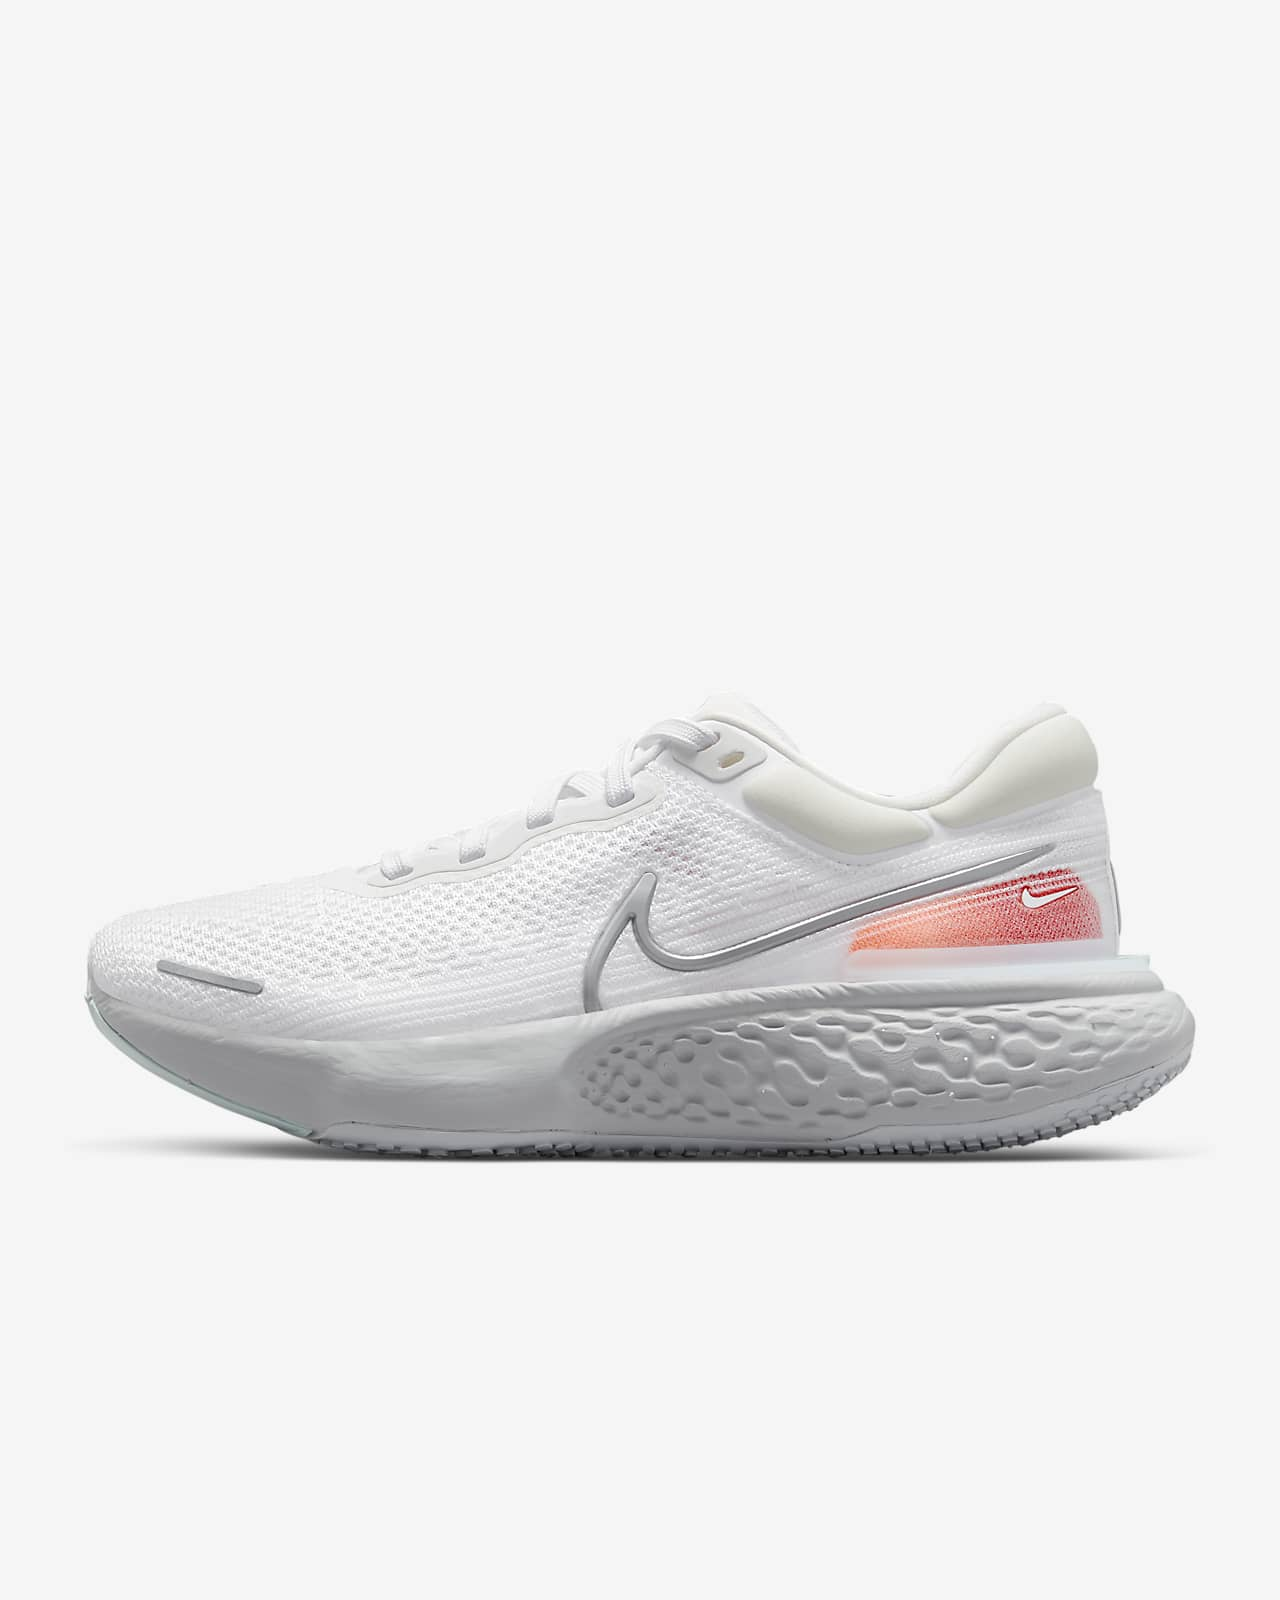 Chaussure de running Nike ZoomX Invincible Run Flyknit pour Homme